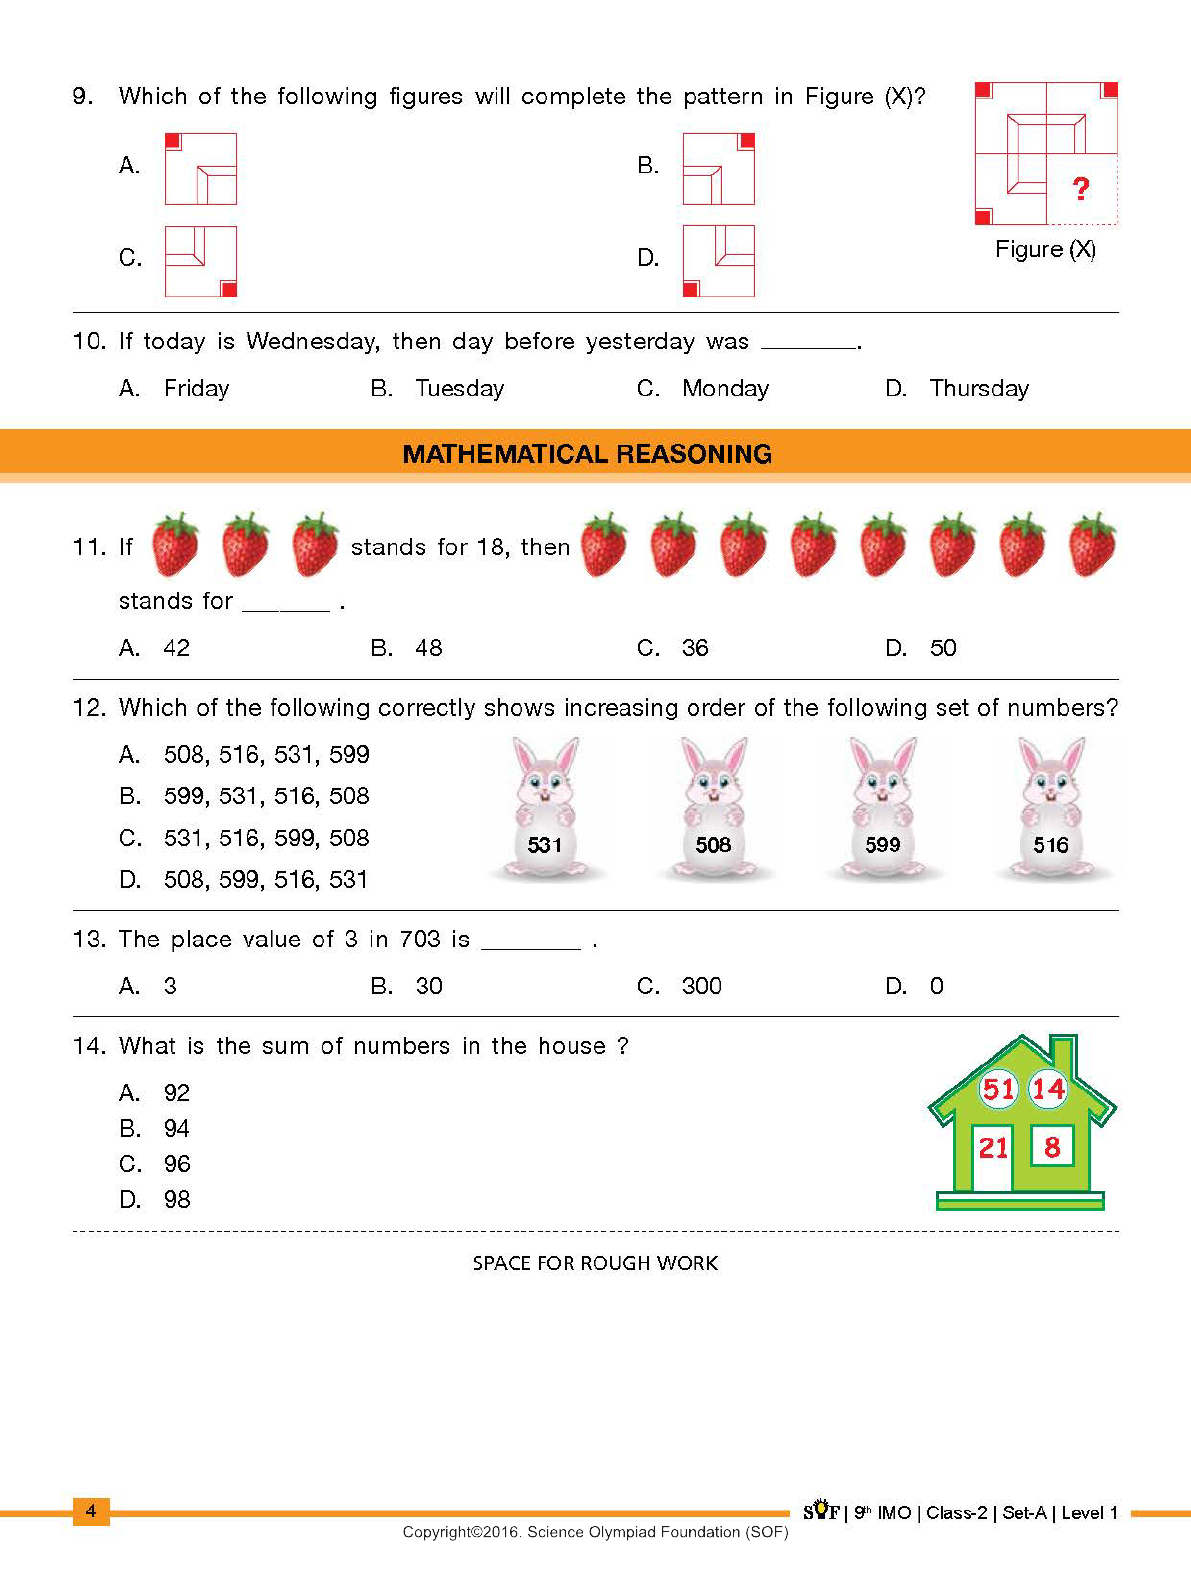 Sample Imo Practice Papers For Grade 2 Free Math Worksheets Mental Maths Worksheets Algebra Equations [ 1584 x 1191 Pixel ]